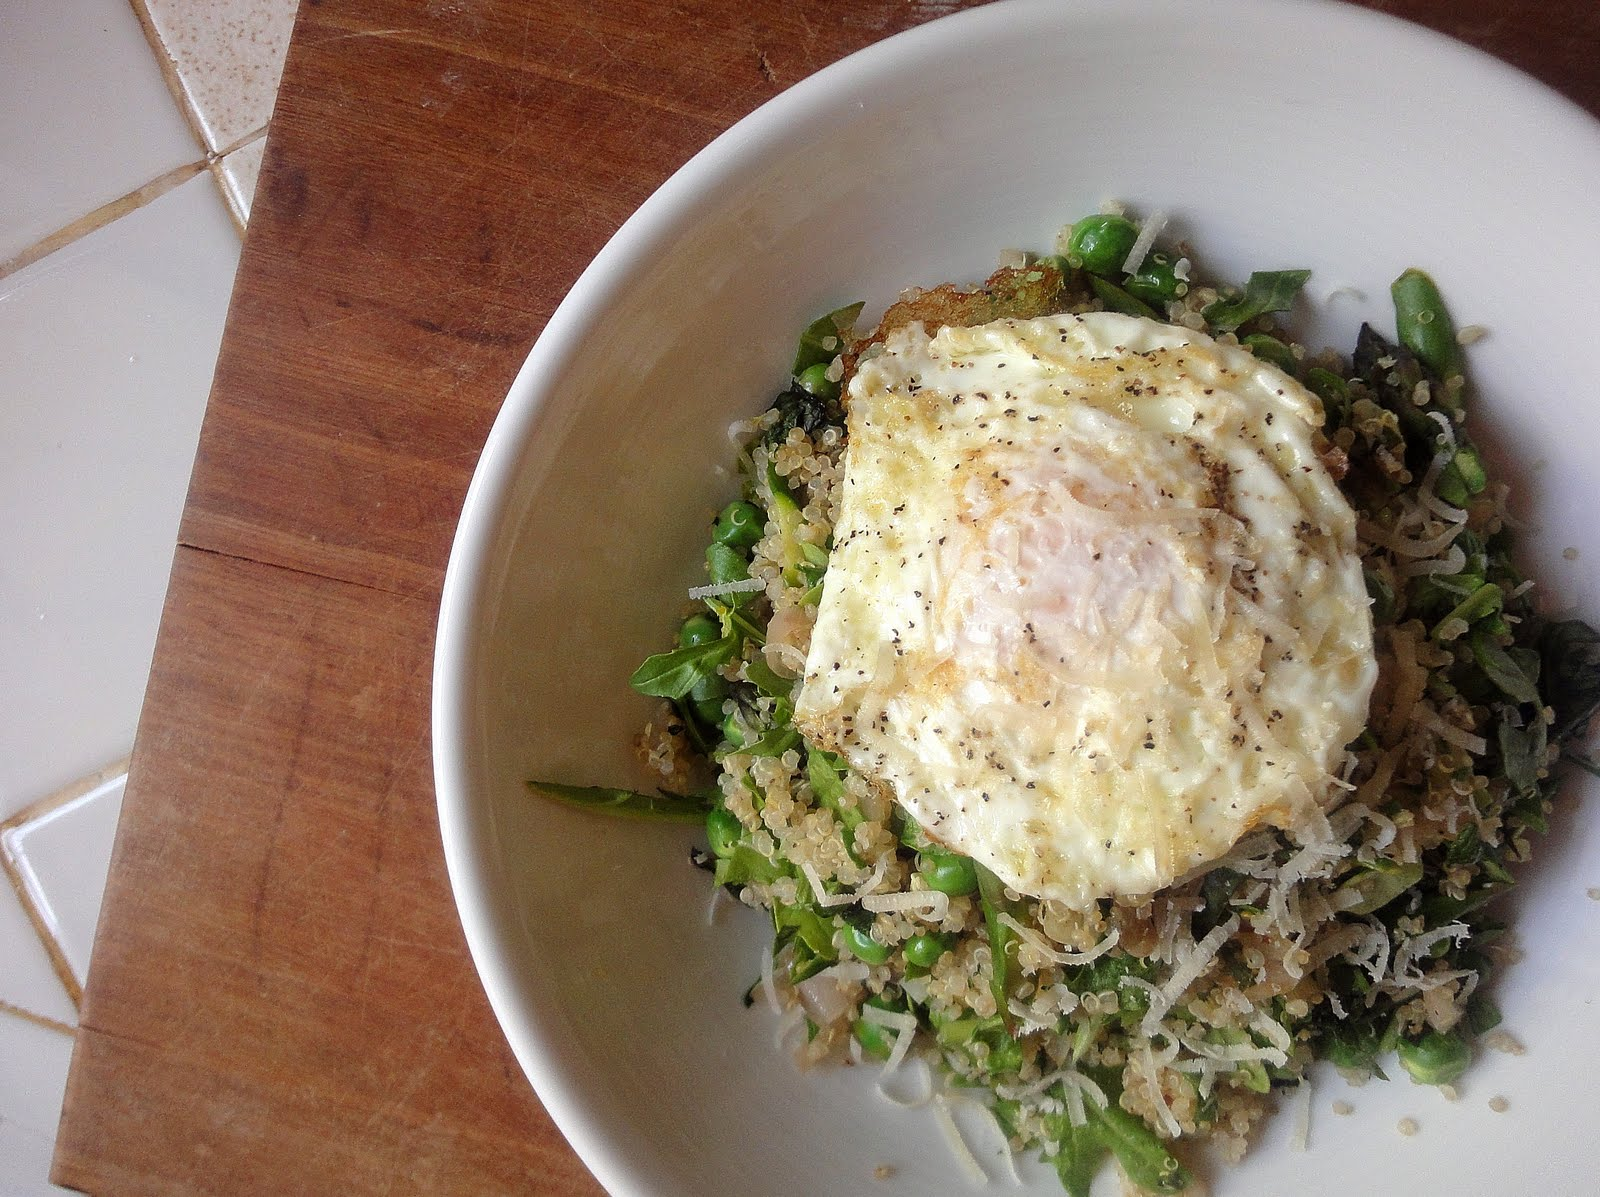 Warm Quinoa Salad With Fried Egg, Spring Vegetables And Herbs: A Few Small  Tweaks